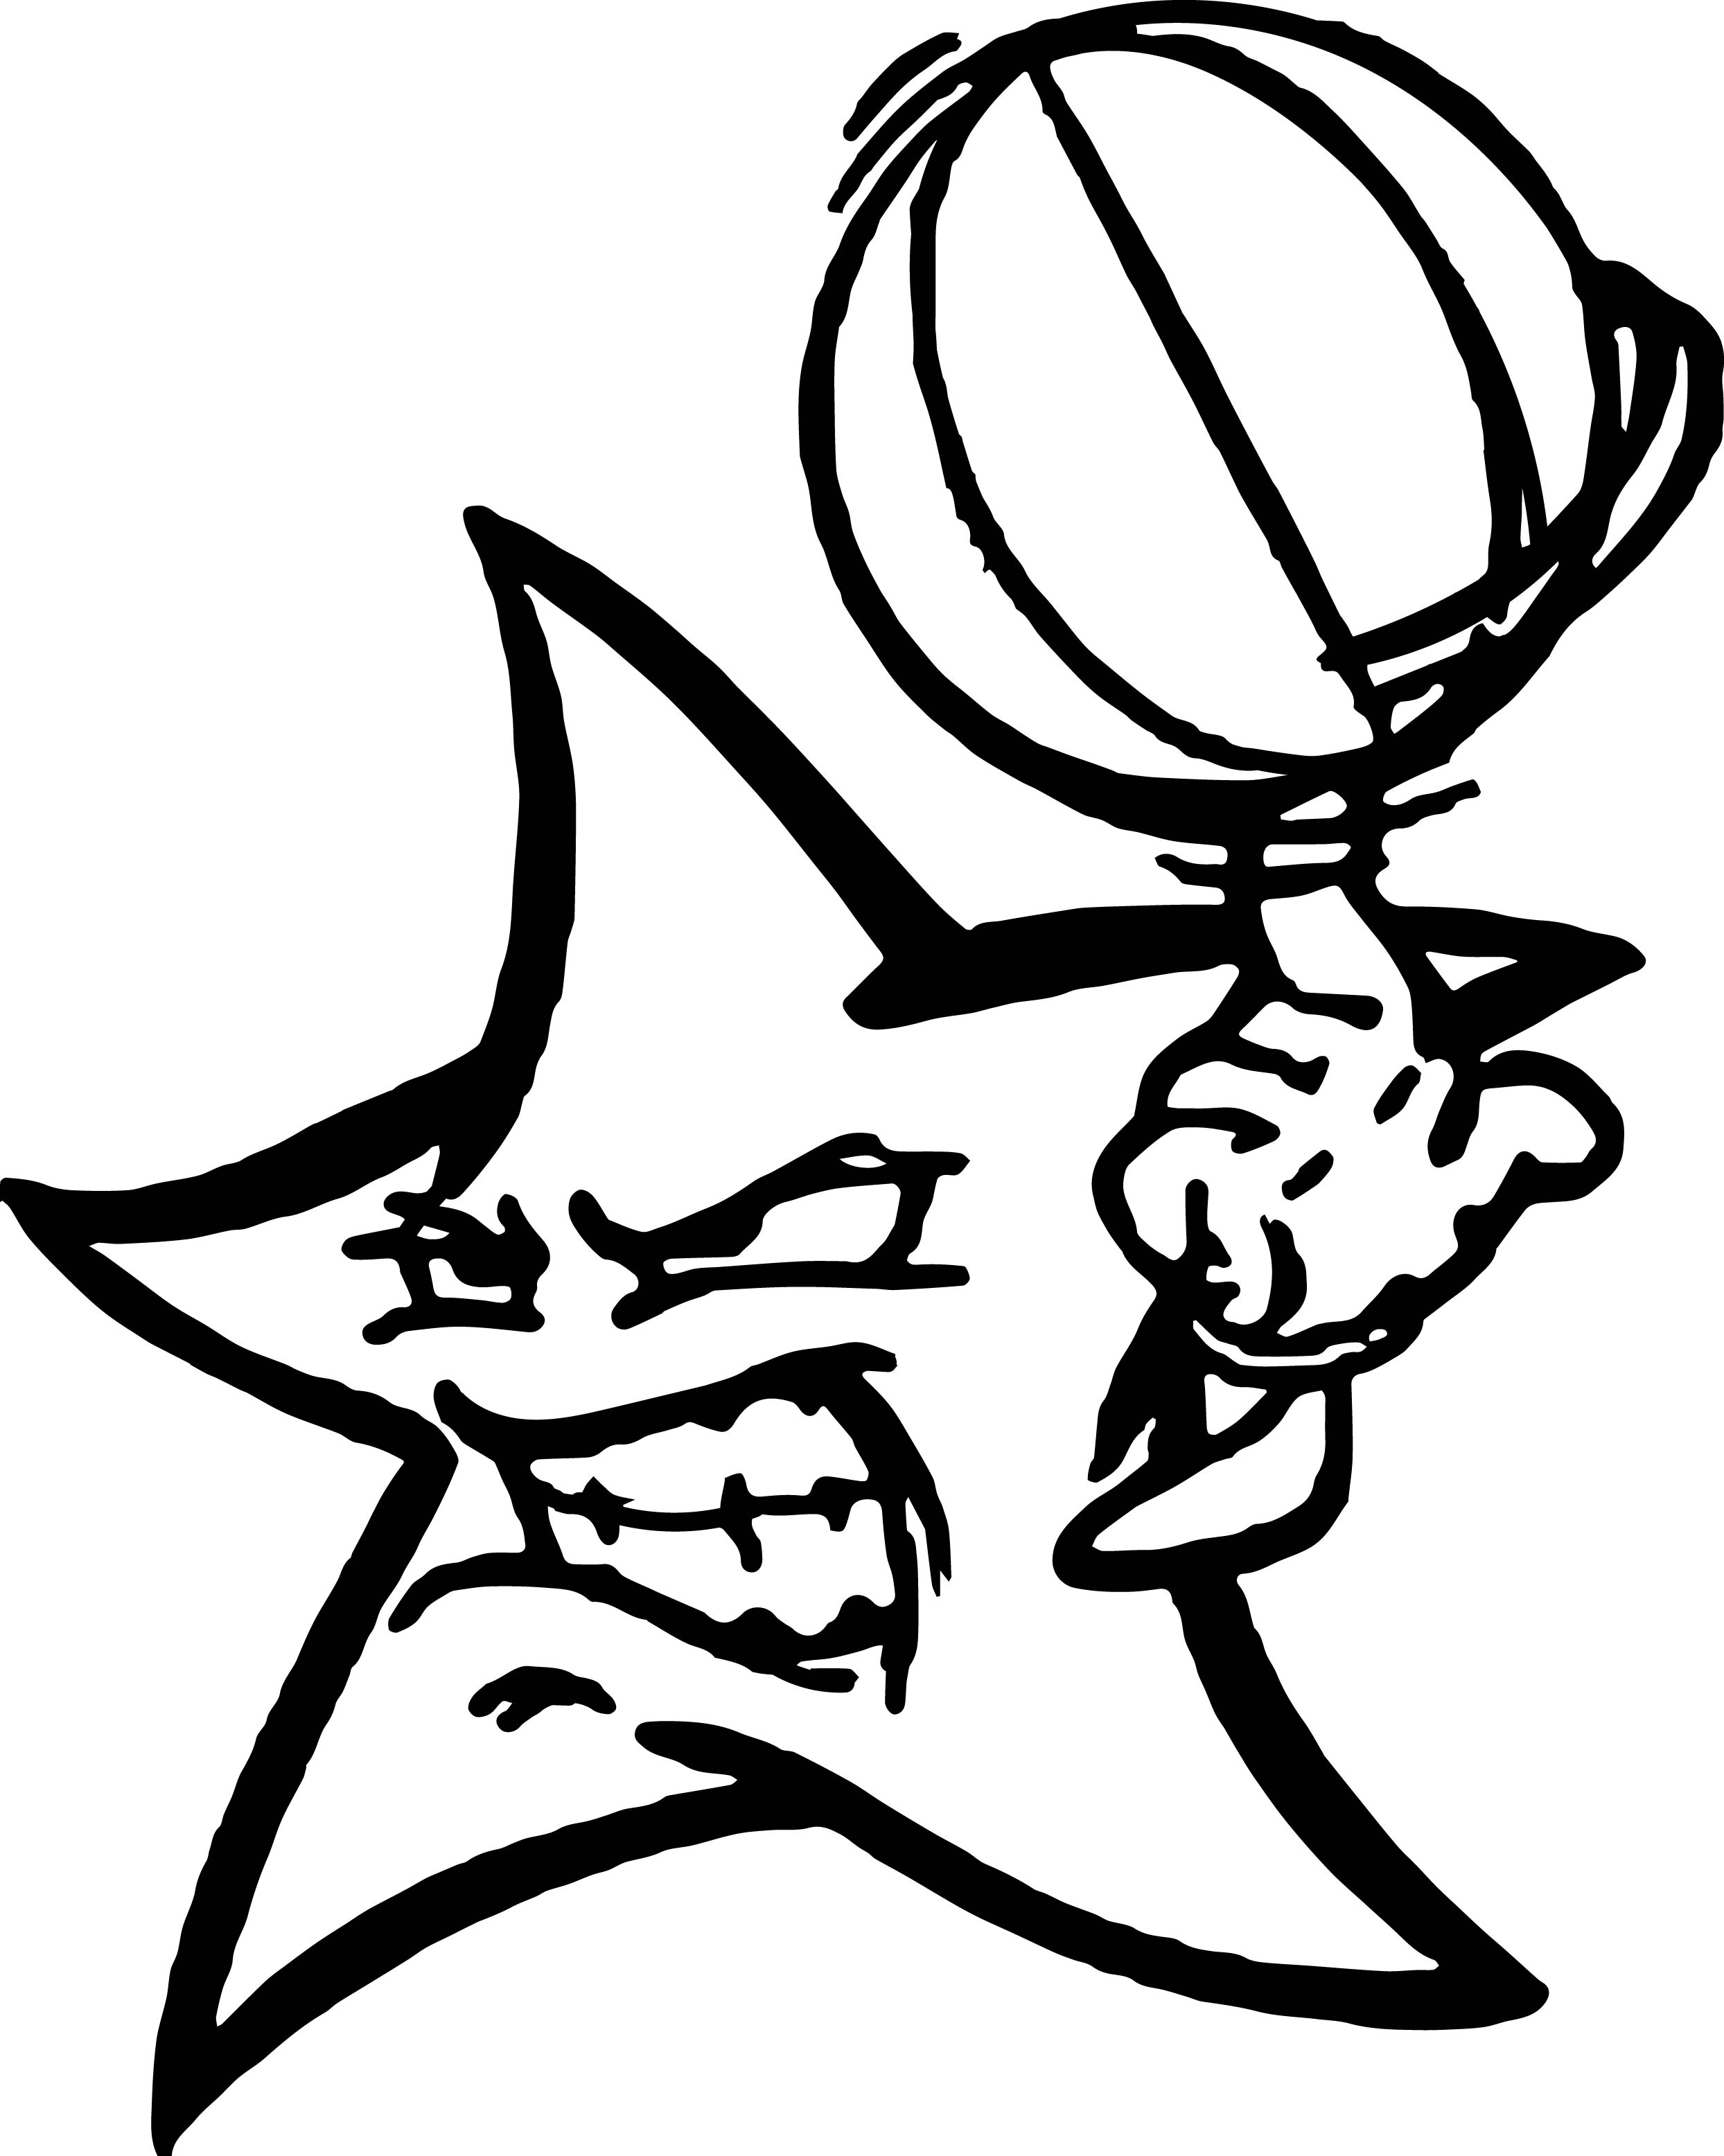 Angry star playing basketball coloring page for Basketball coloring page